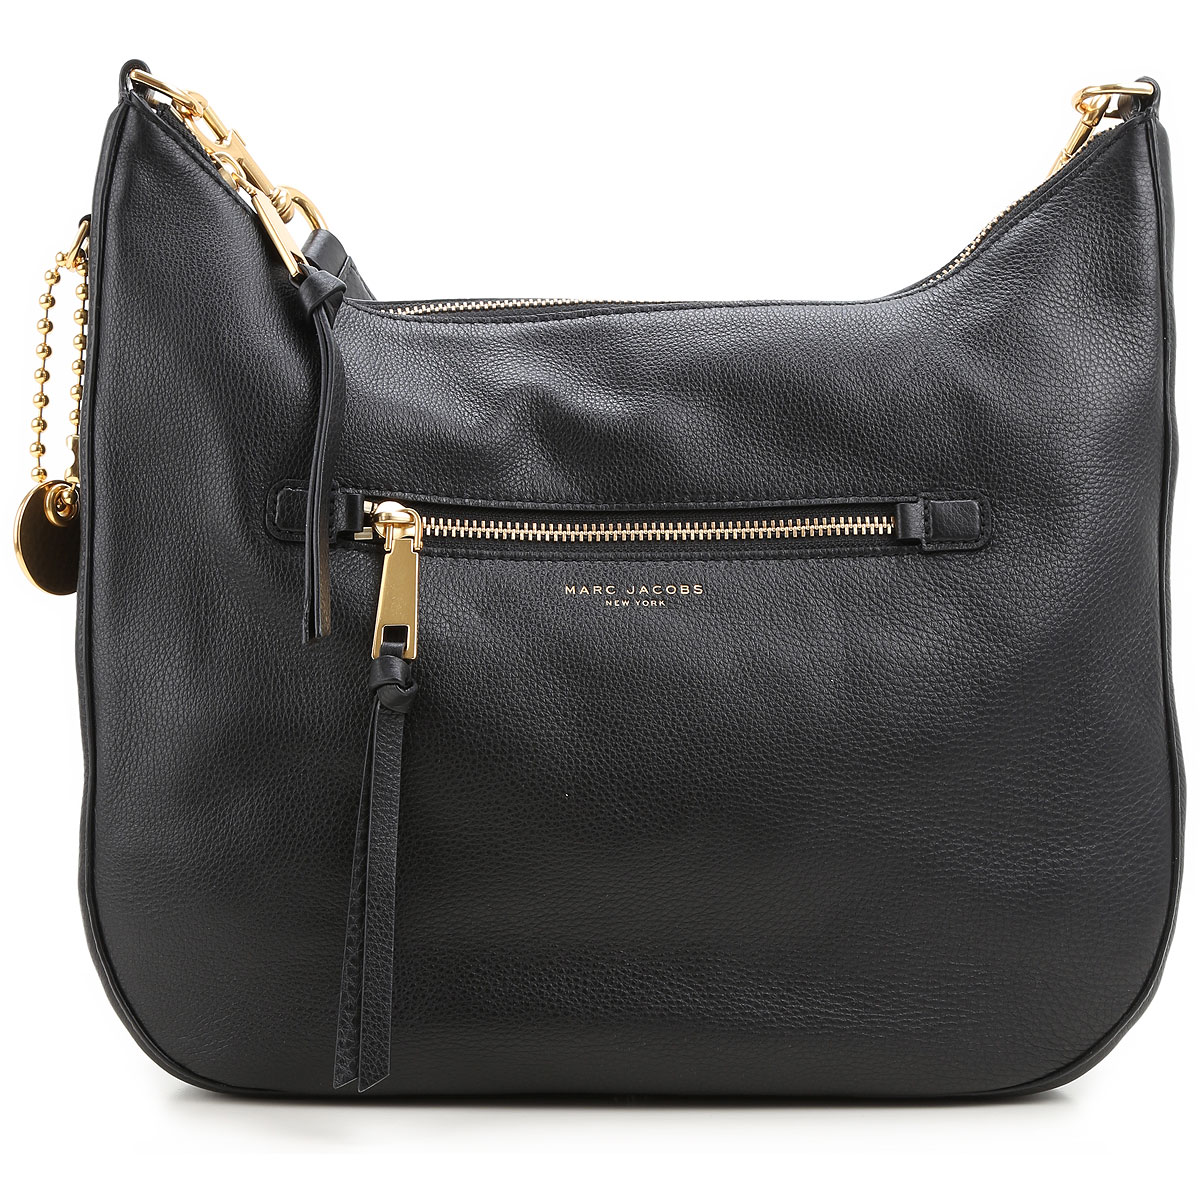 Marc Jacobs Tote Bag, Black, Leather, 2017 USA-367537